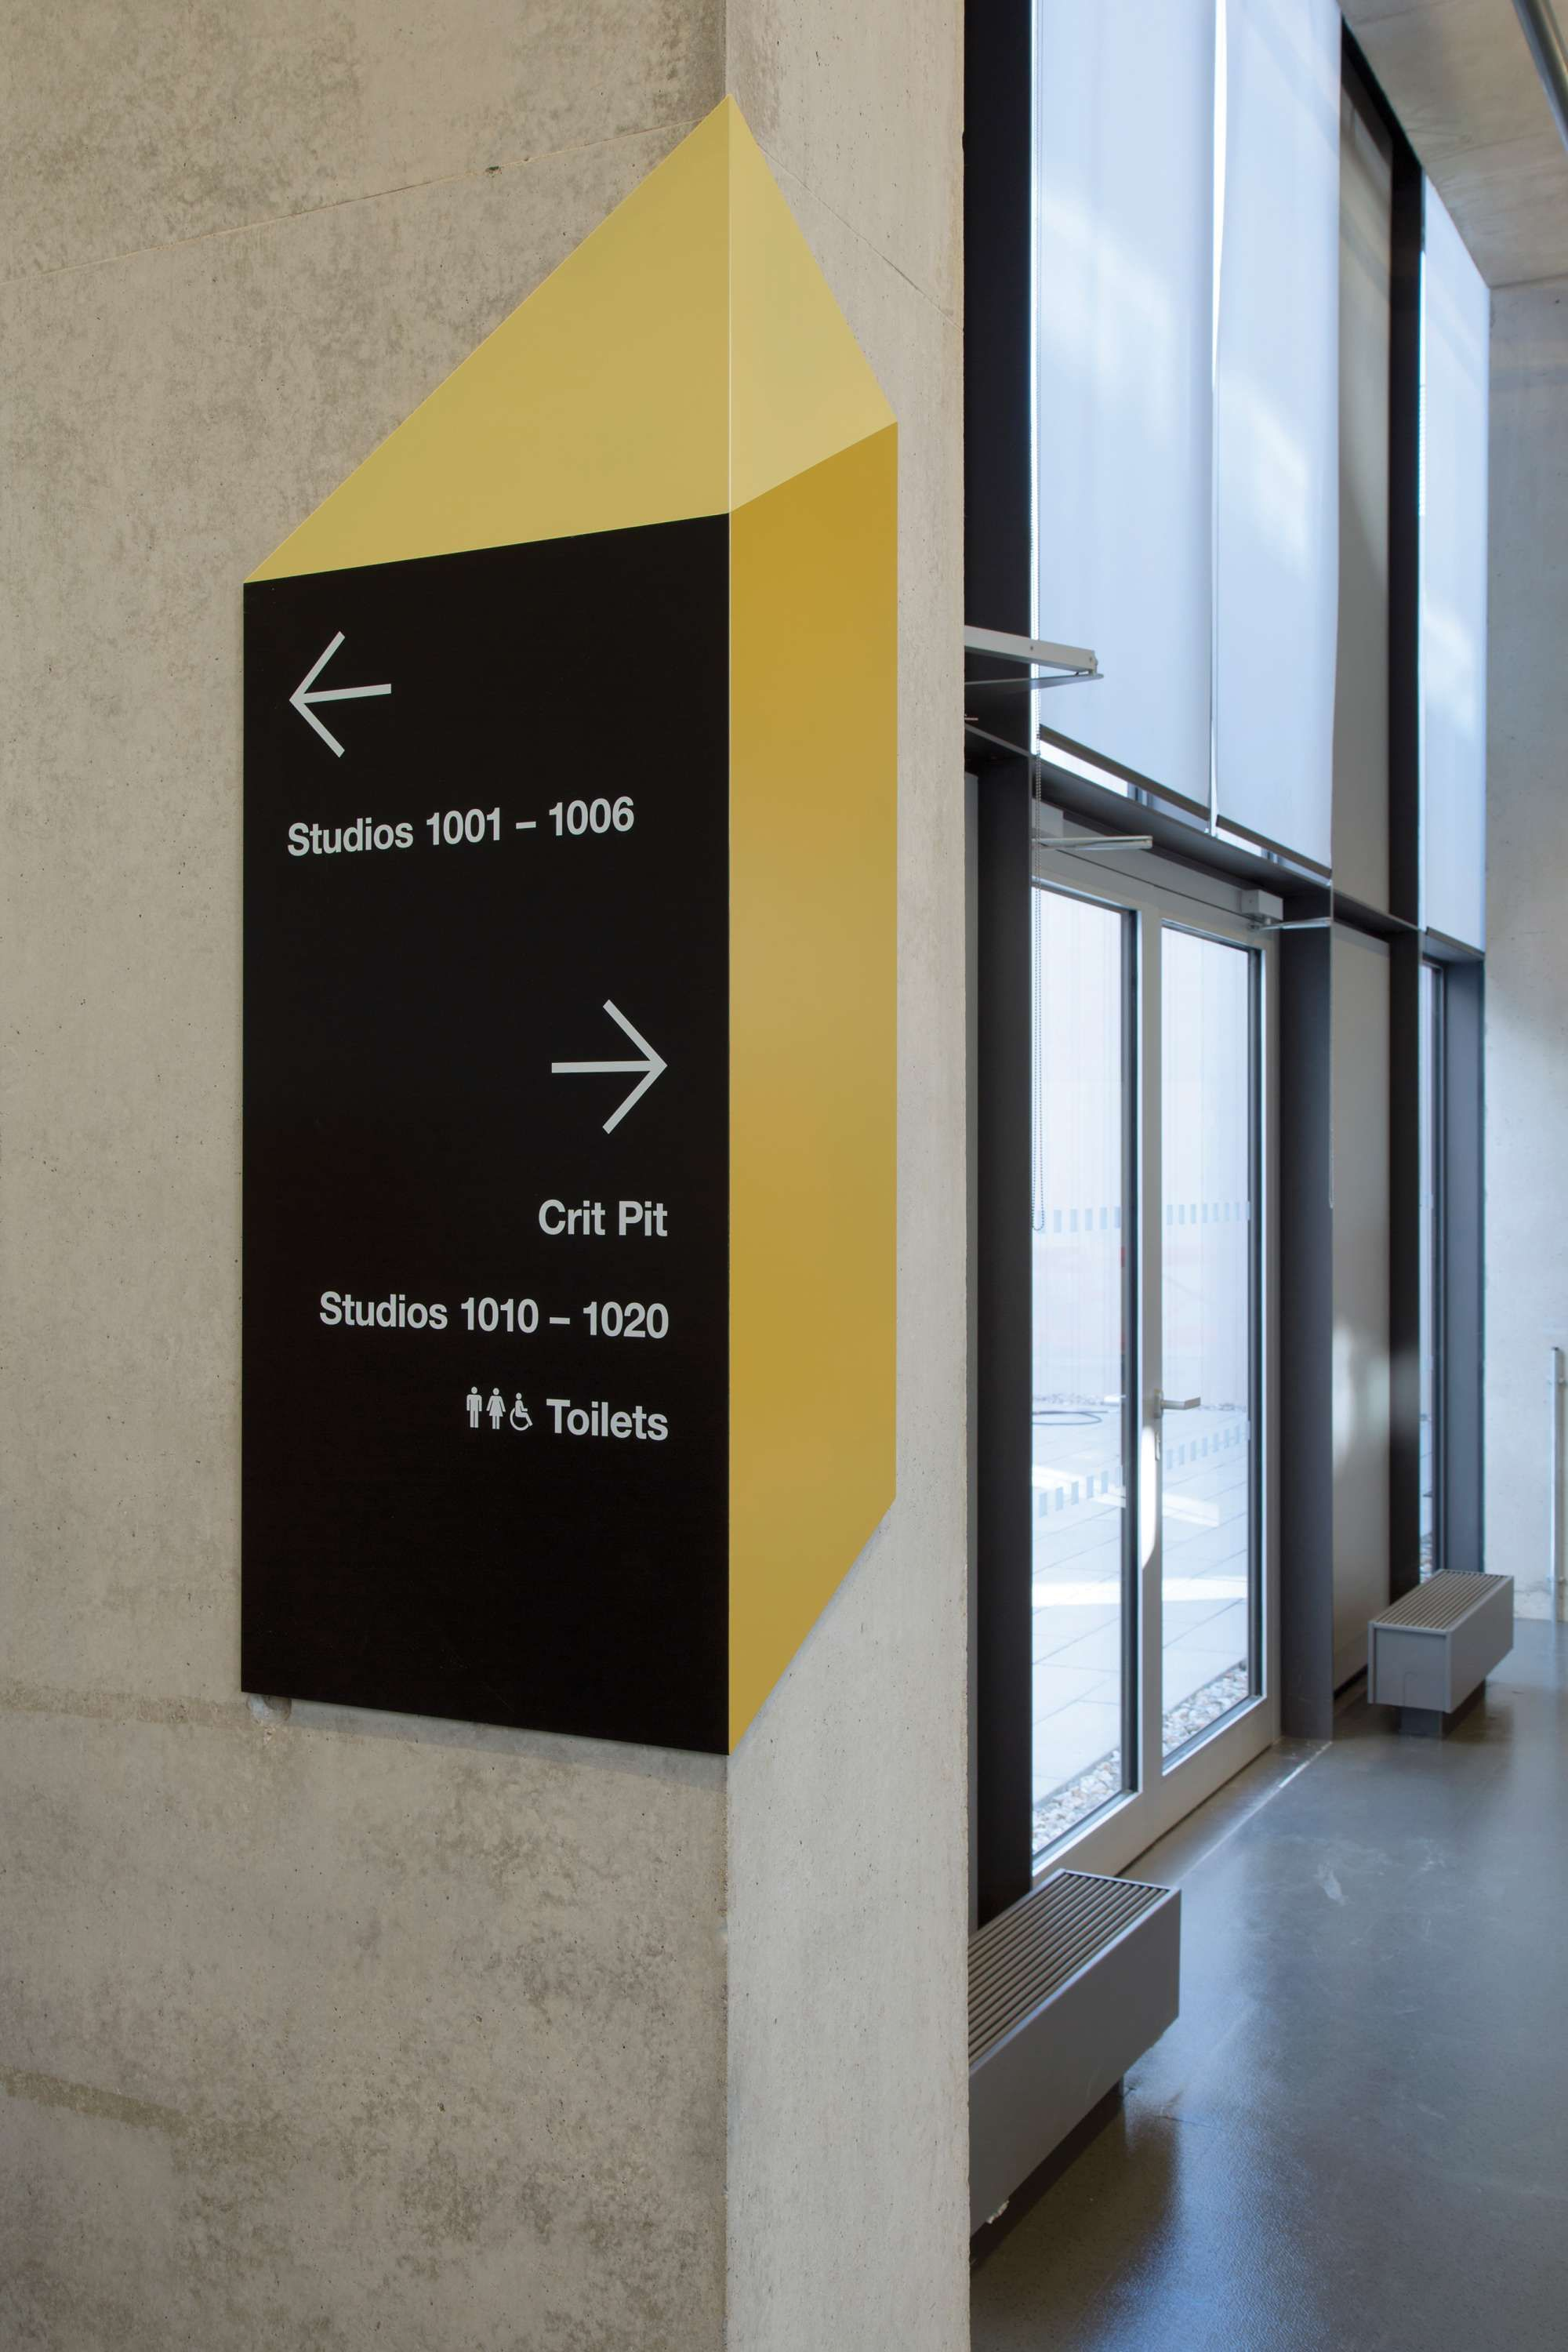 Holmes Wood Are A Leading Uk Based Design Company Specialising In Wayfinding Sign And Graphic Solutions